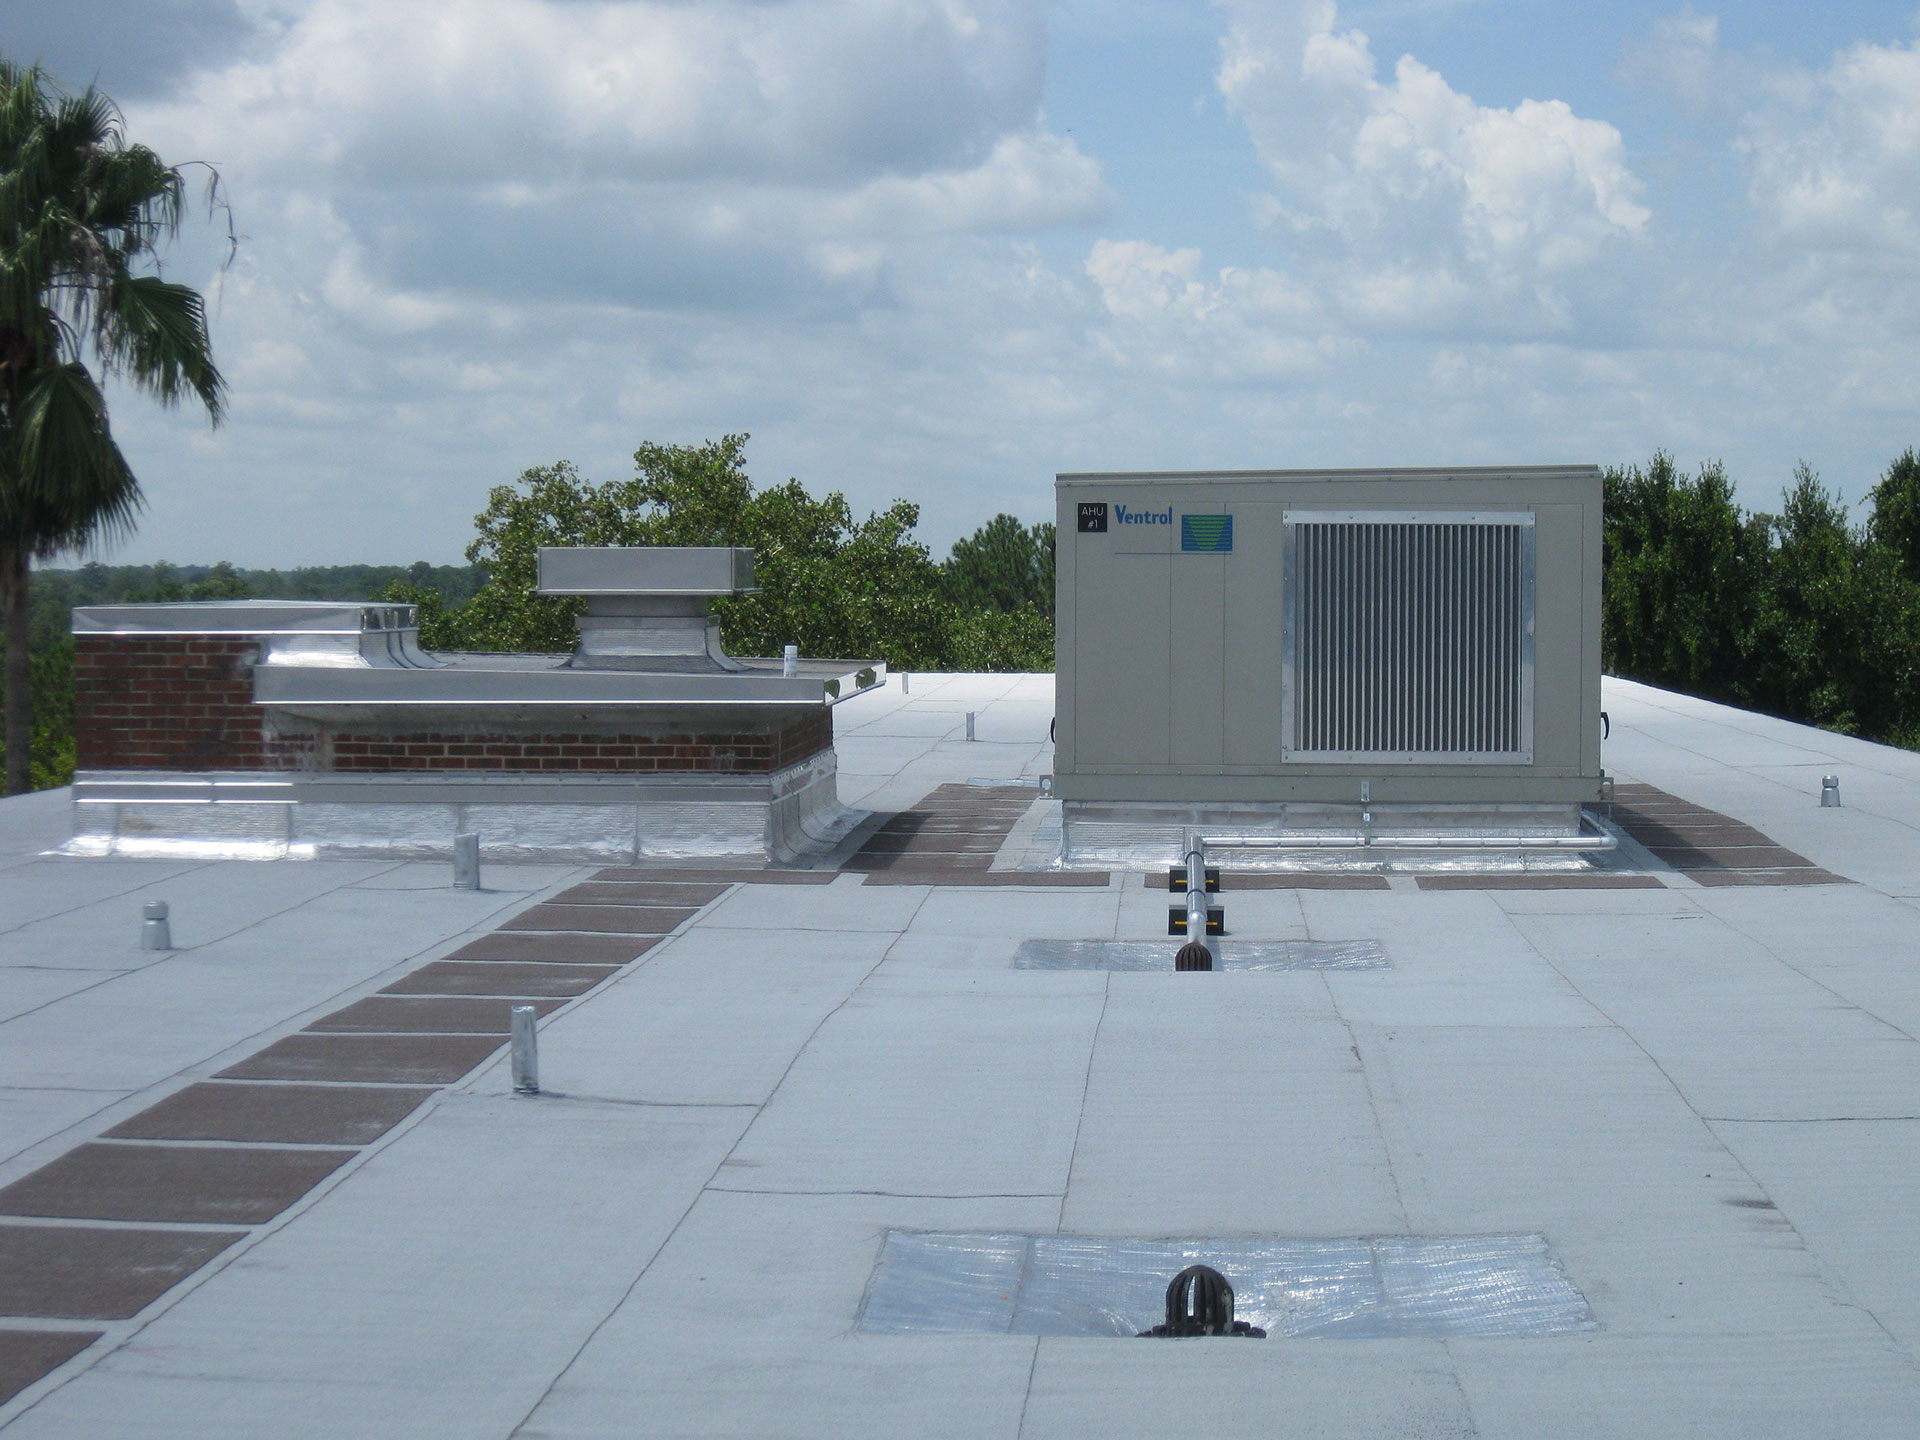 UF Weaver Hall AHU Roof and Electrical Oelrich Construction